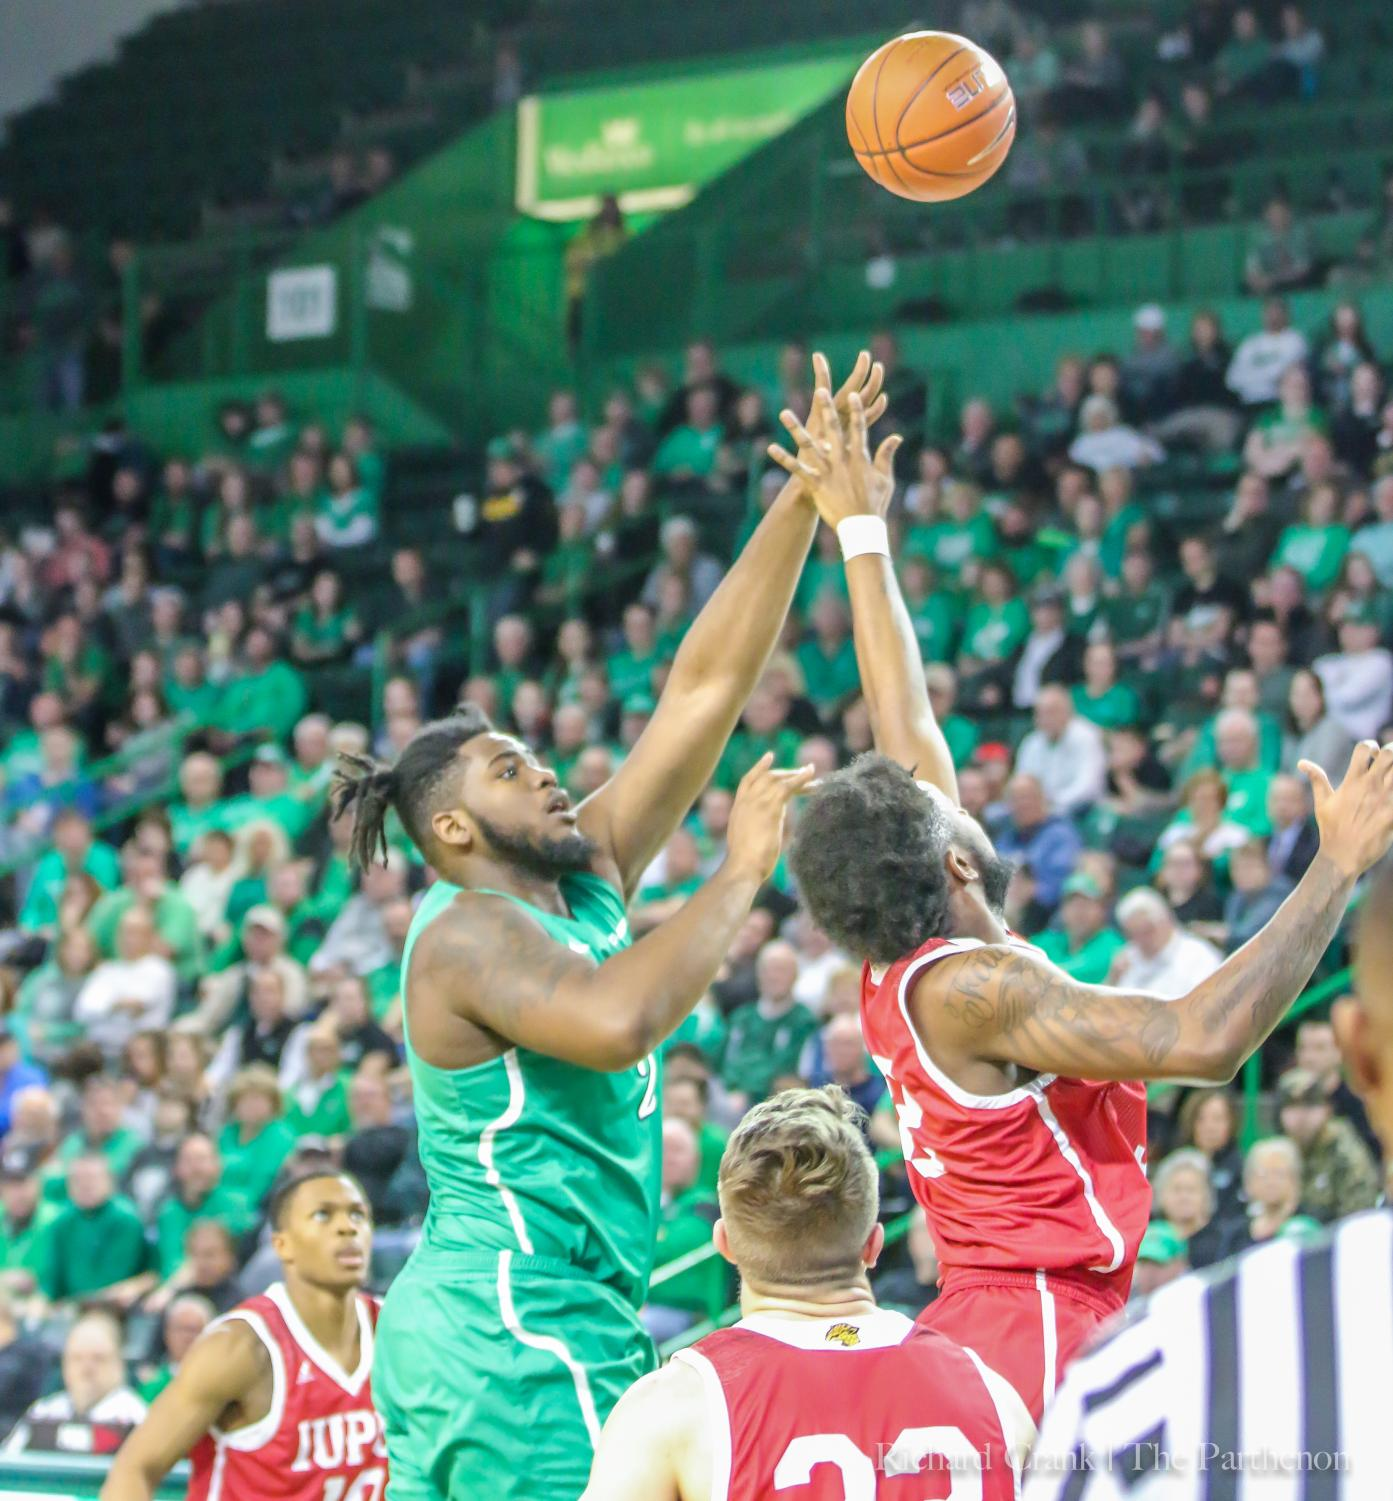 Marshall forward Iran Bennett (2) shoots a floater over IUPUI forward Elyjah Goss (32) in the first half of the Thundering Herd's game against the Jaguars on March 19, 2019.